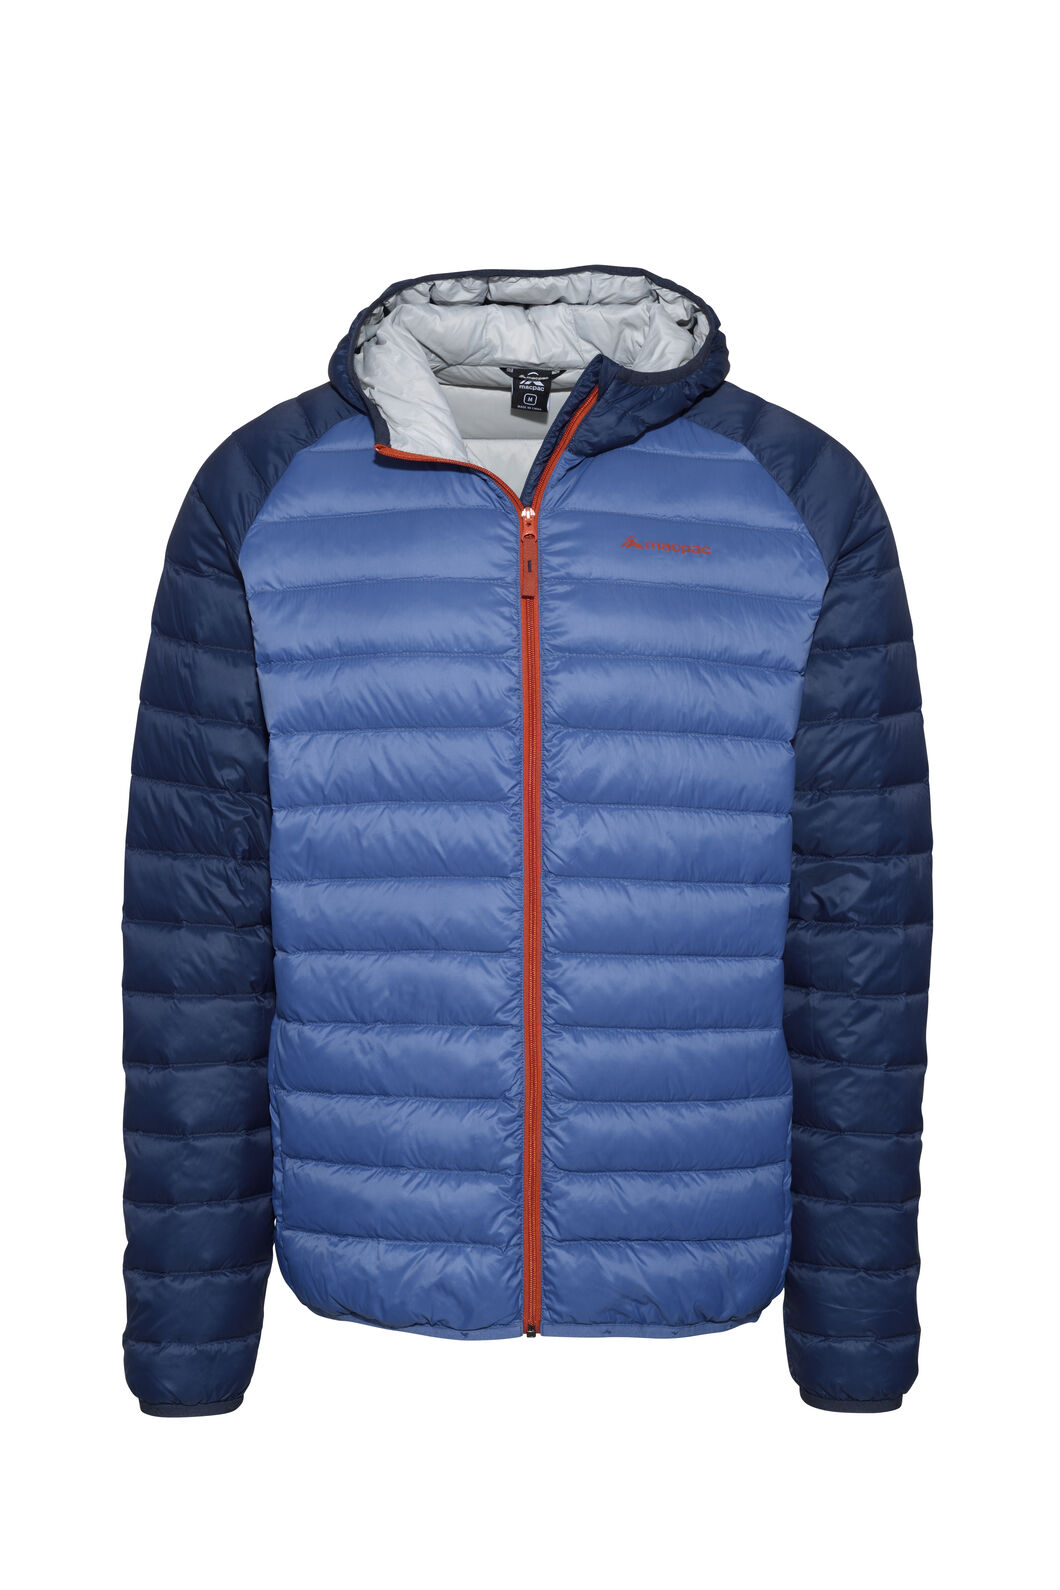 Macpac Uber Hooded Down Jacket - Men's, Black Iris/True Navy, hi-res